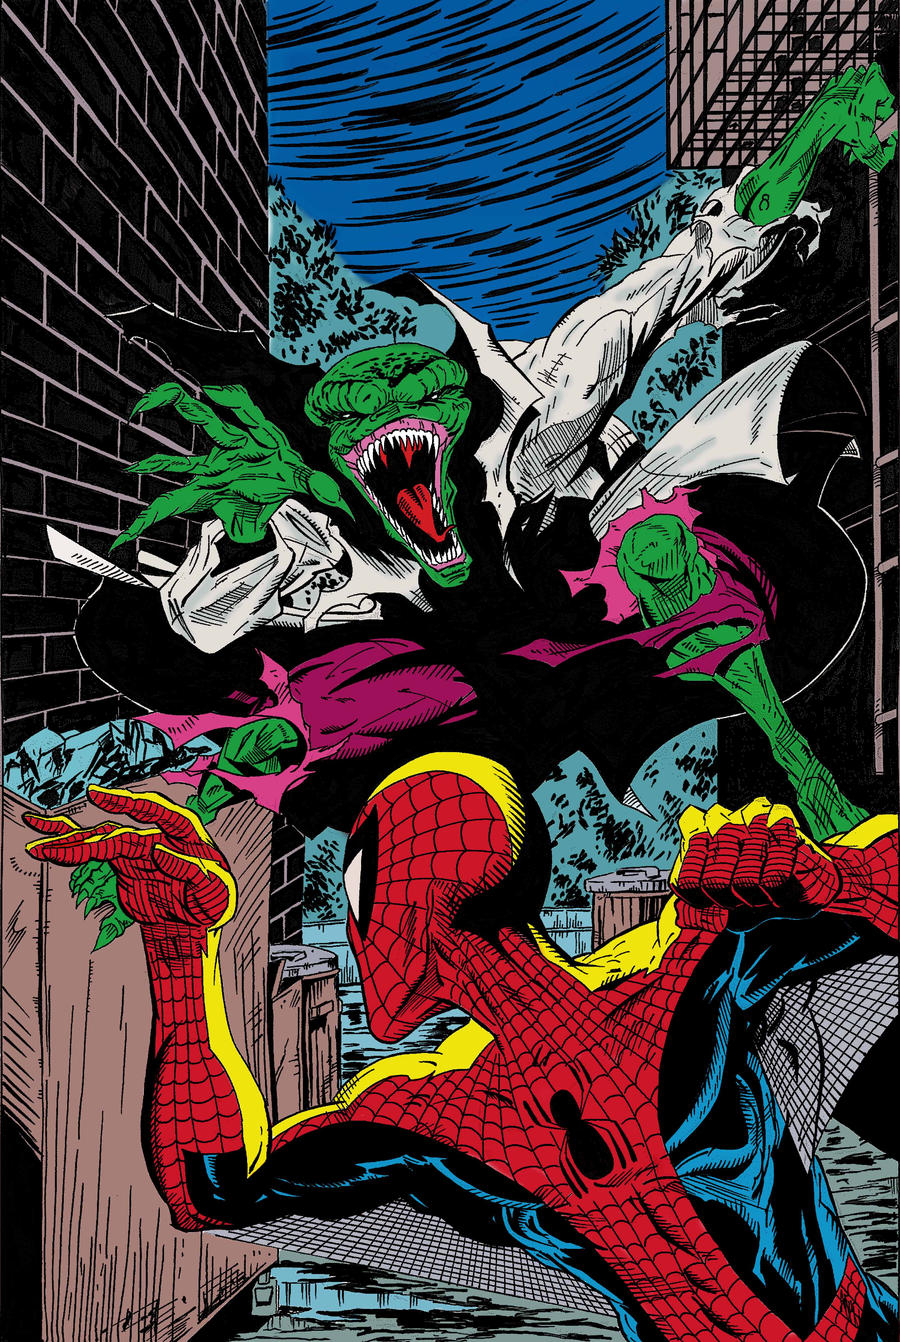 todd mcfarlane career analysis The character first appeared in malibu sun #13 (may 1992), created by todd mcfarlane  his job is to incite spawn into committing evil, .